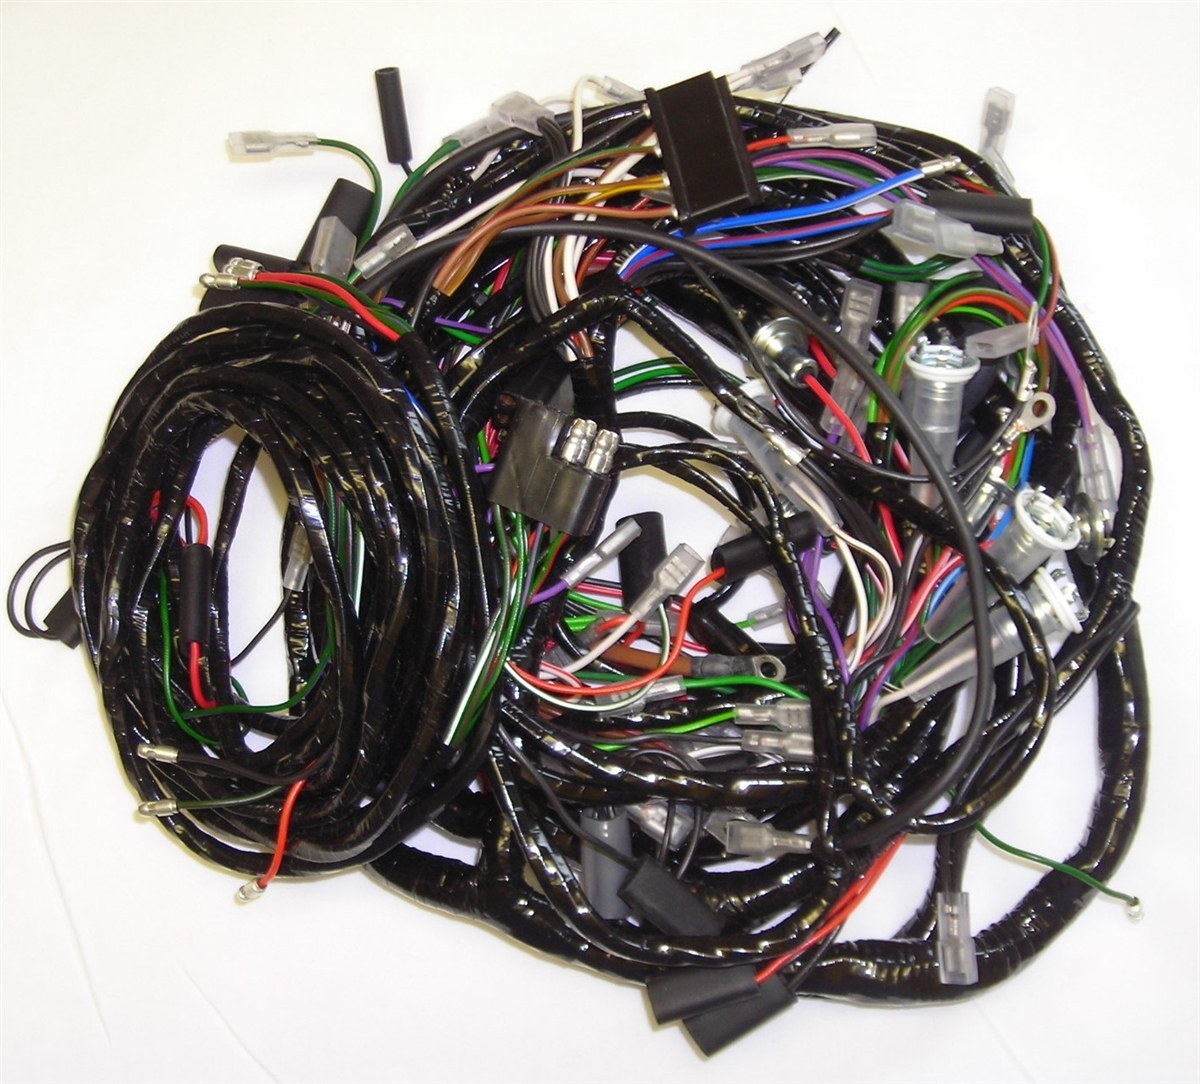 Triumph TR250 Main Harness Kit (1063) on pet harness, engine harness, pony harness, obd0 to obd1 conversion harness, safety harness, suspension harness, multicore cable, direct-buried cable, cable carrier, cable harness, amp bypass harness, dog harness, radio harness, maxi-seal harness, cable reel, electrical harness, alpine stereo harness, cable management, fall protection harness, battery harness, nakamichi harness, oxygen sensor extension harness, cable dressing,